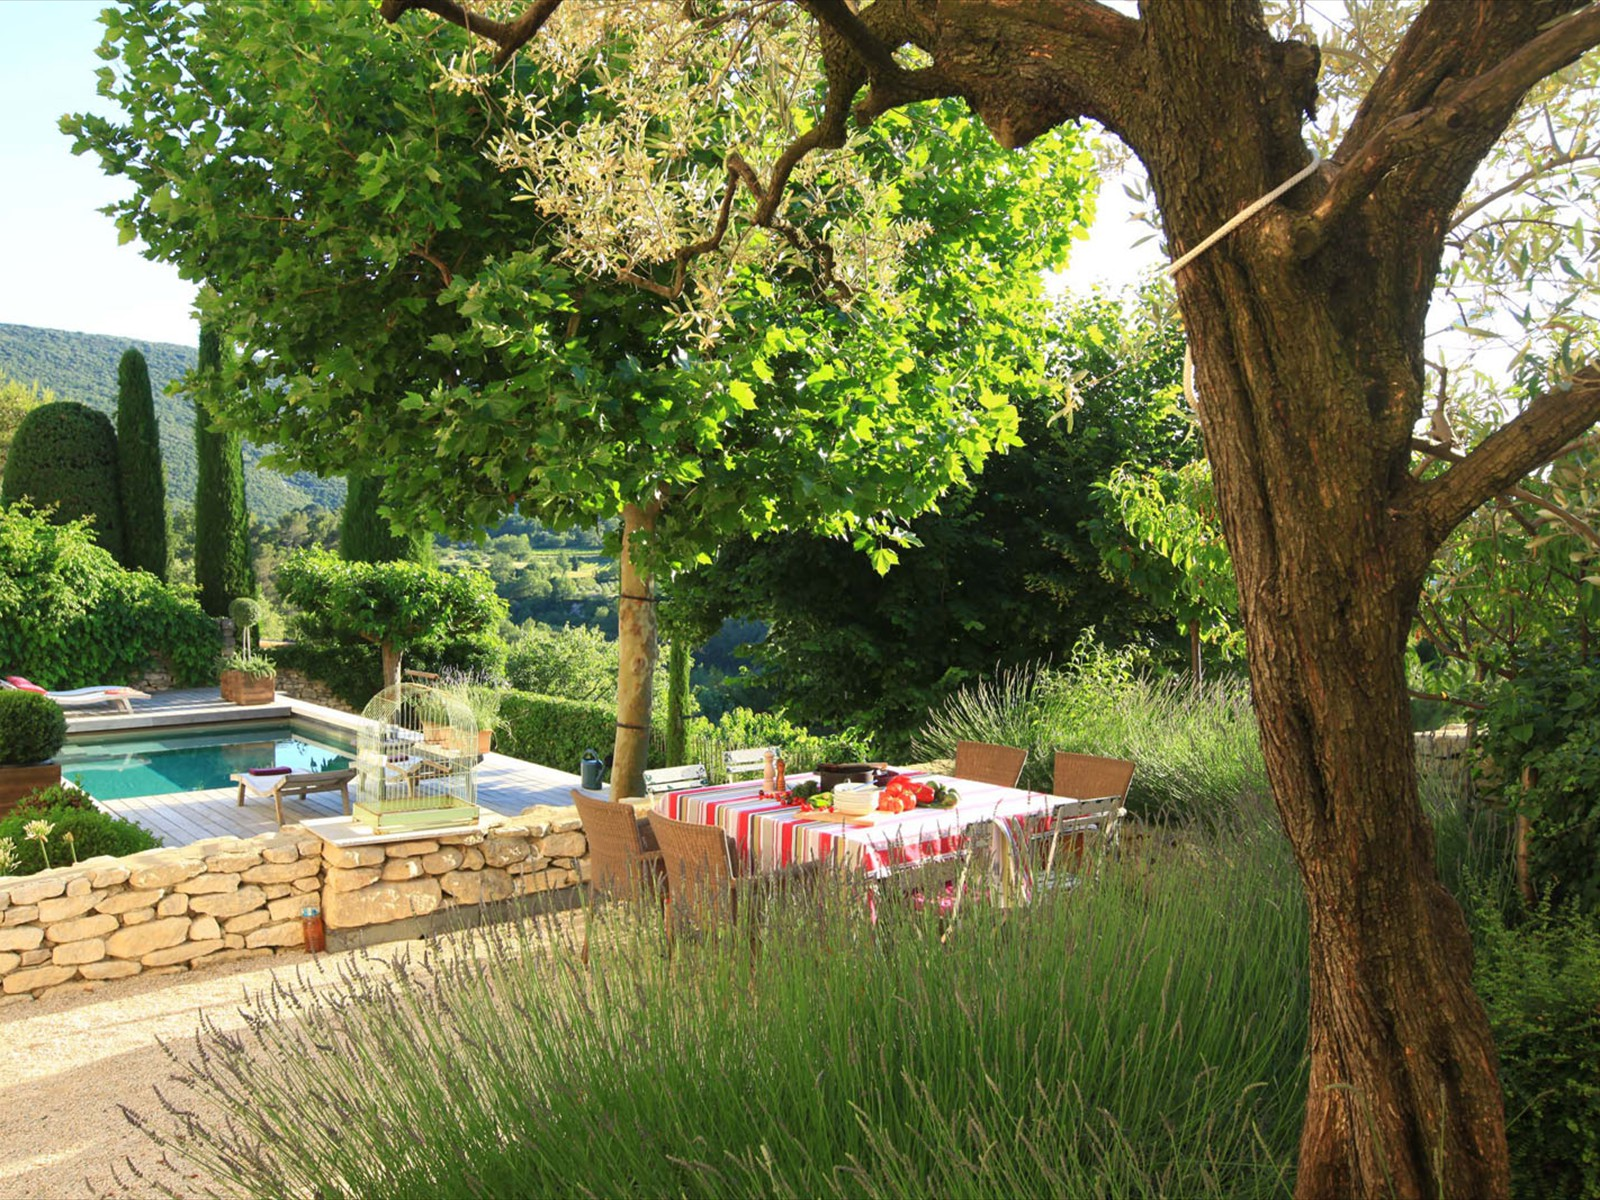 exclusive_rentals_provence_vacation_luxury_homes_holiday_rentals_mont_ventoux_luberon_21